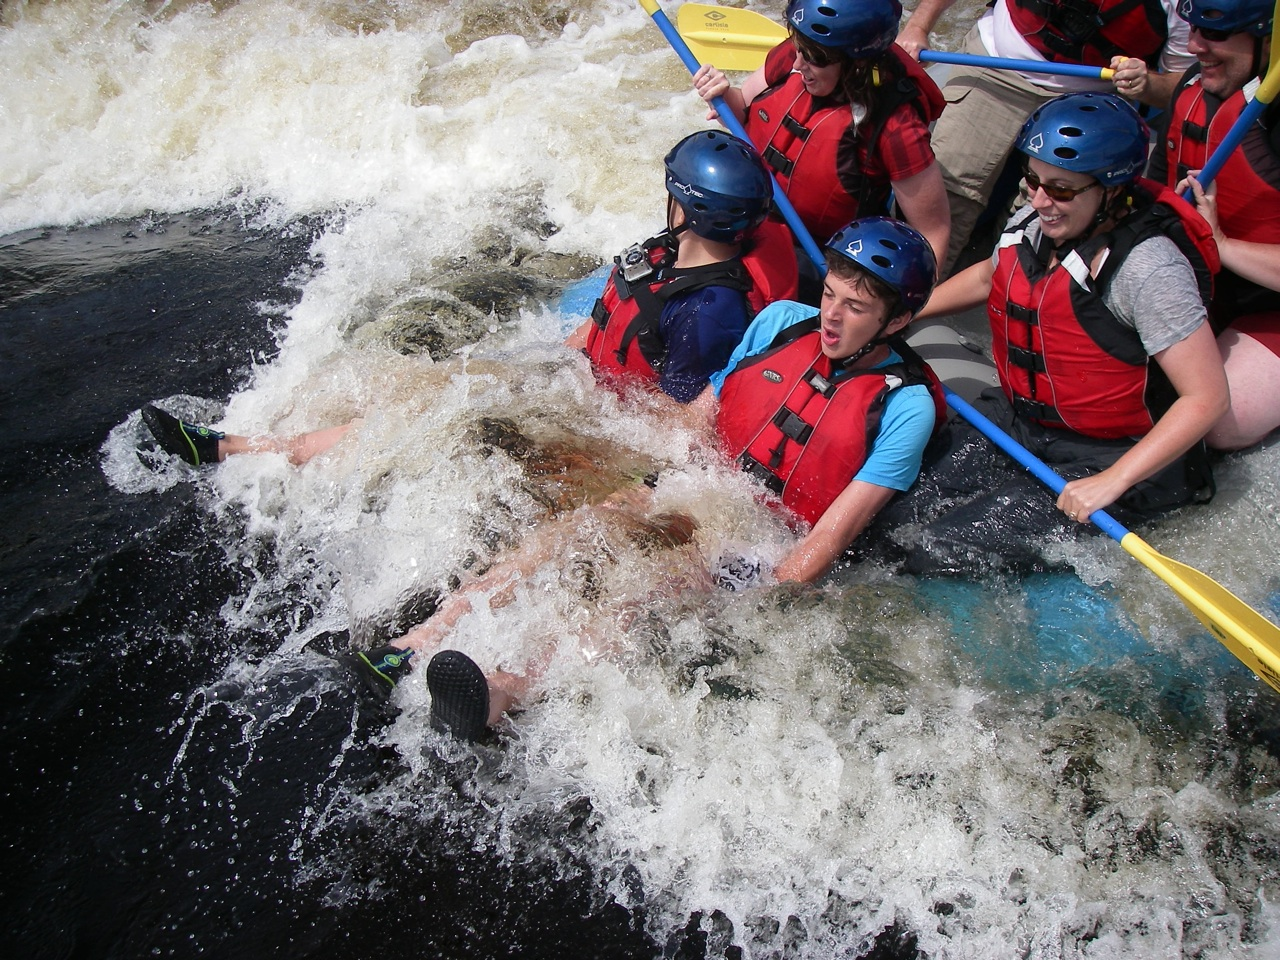 Our Raft Hitting A Deep Rapid